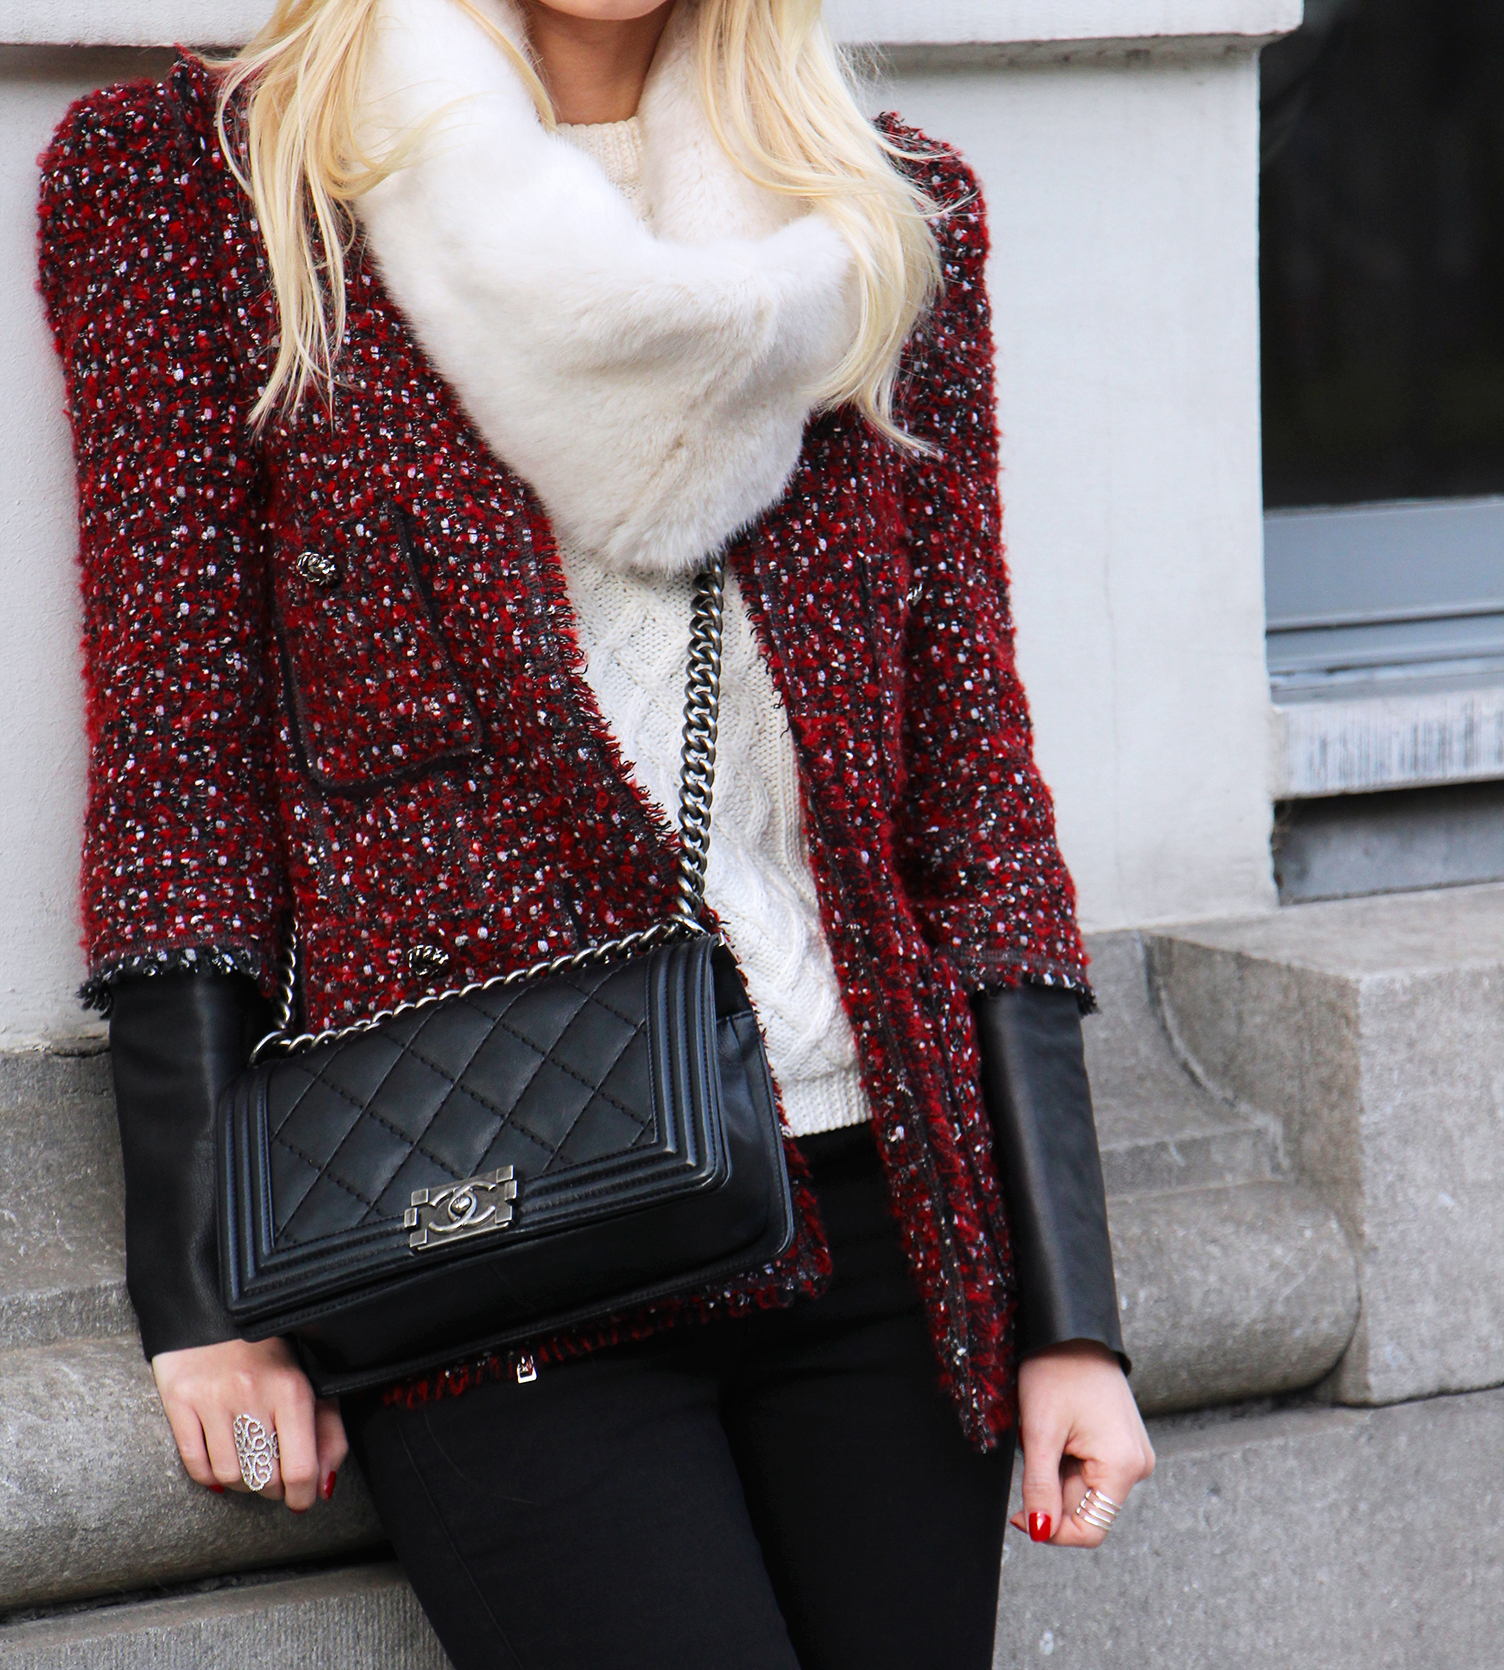 outfit26okt1